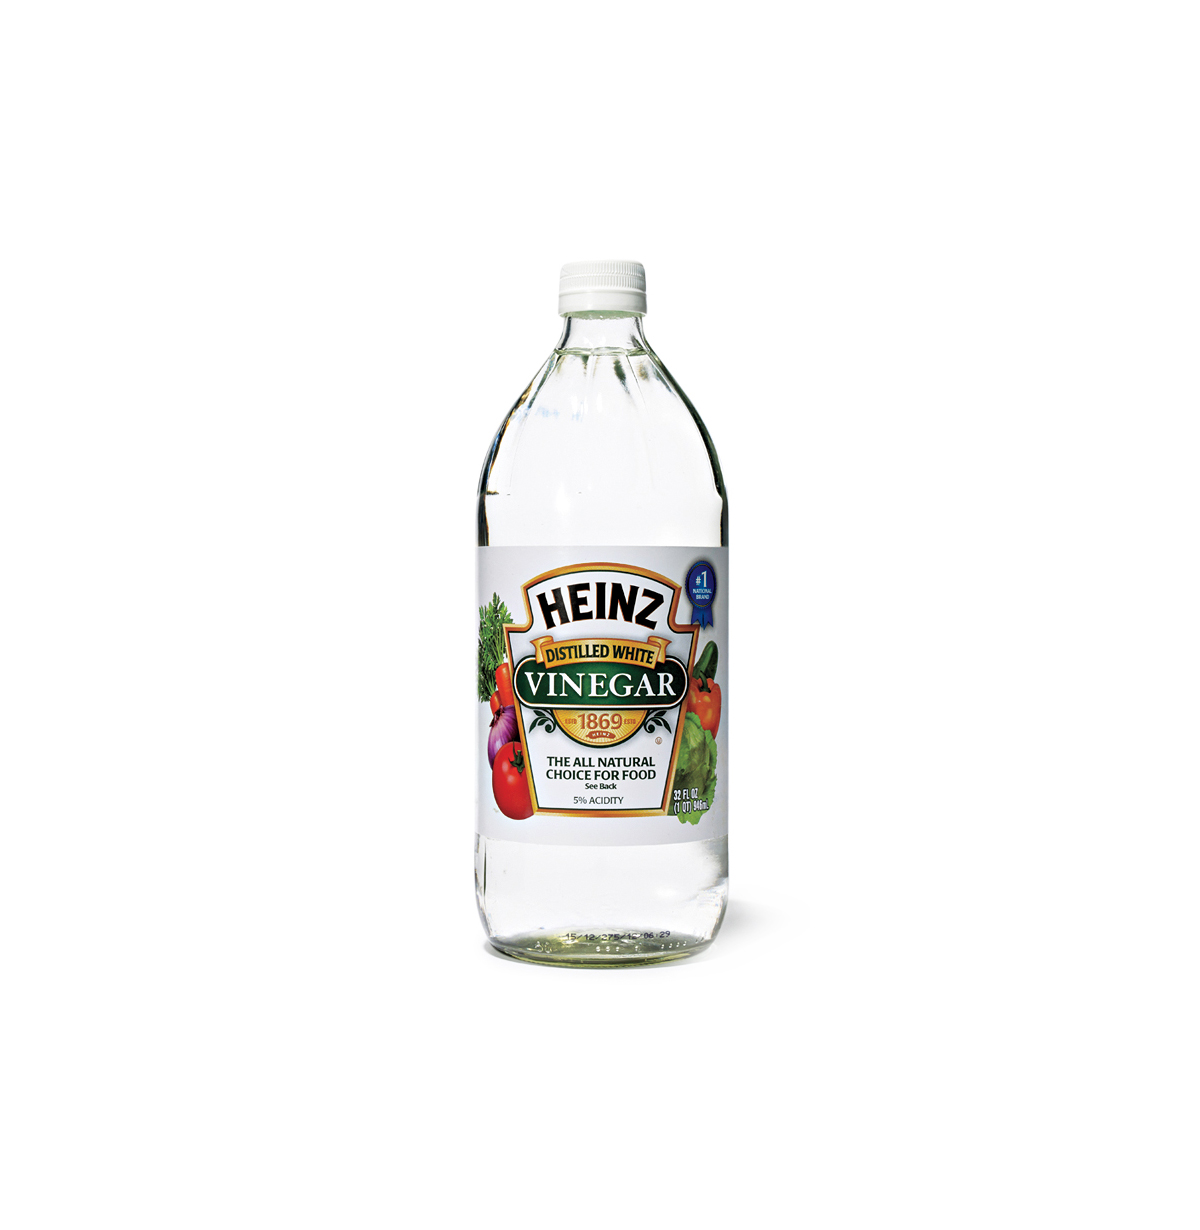 Heinz Distilled White Vinegar